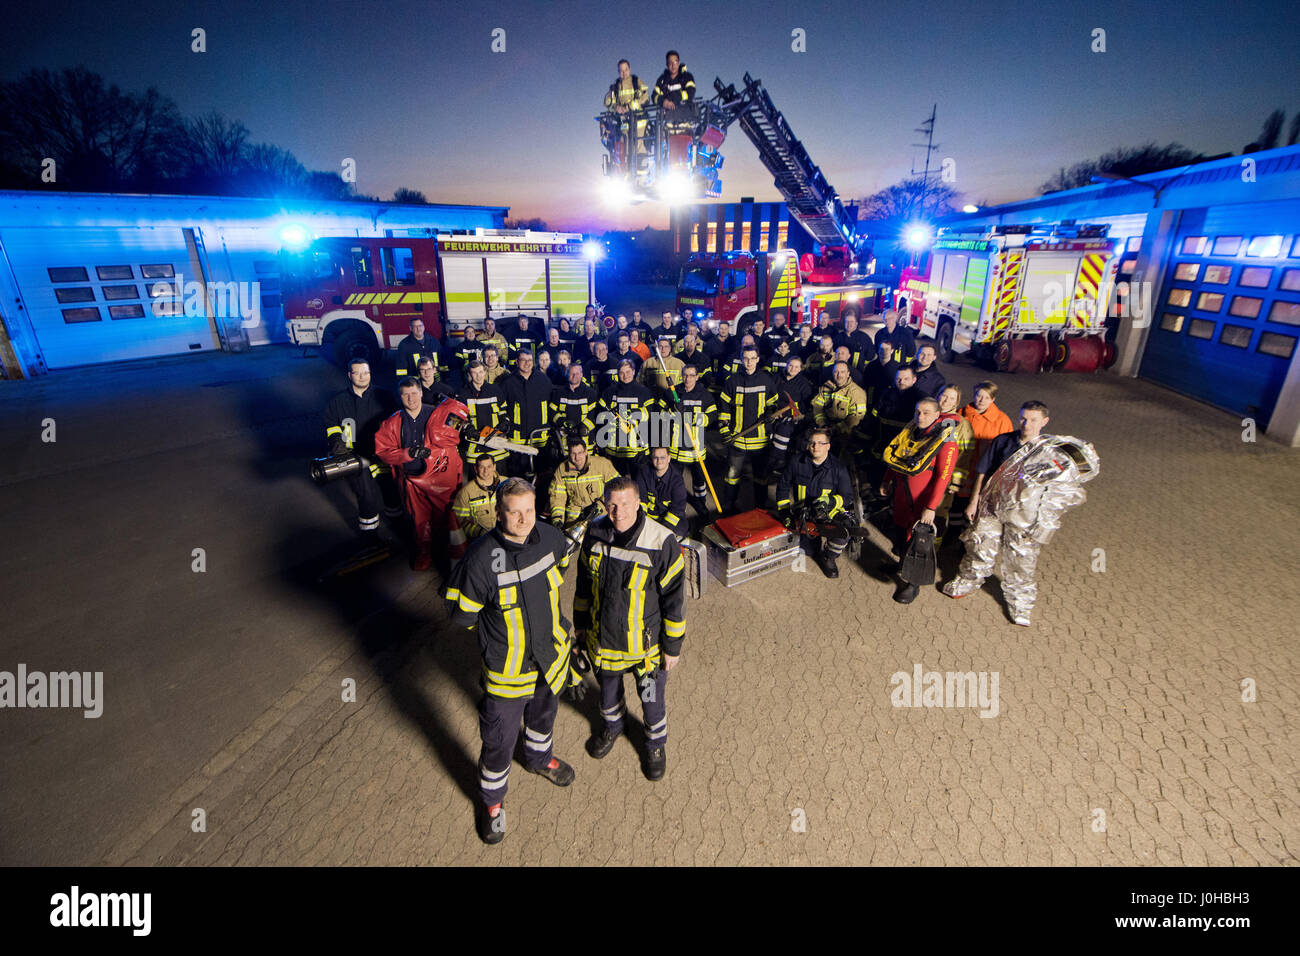 Lehrte, Germany. 16th Mar, 2017. Members of the voluntary fire brigade pose for a group photo in Lehrte, Germany, - Stock Image